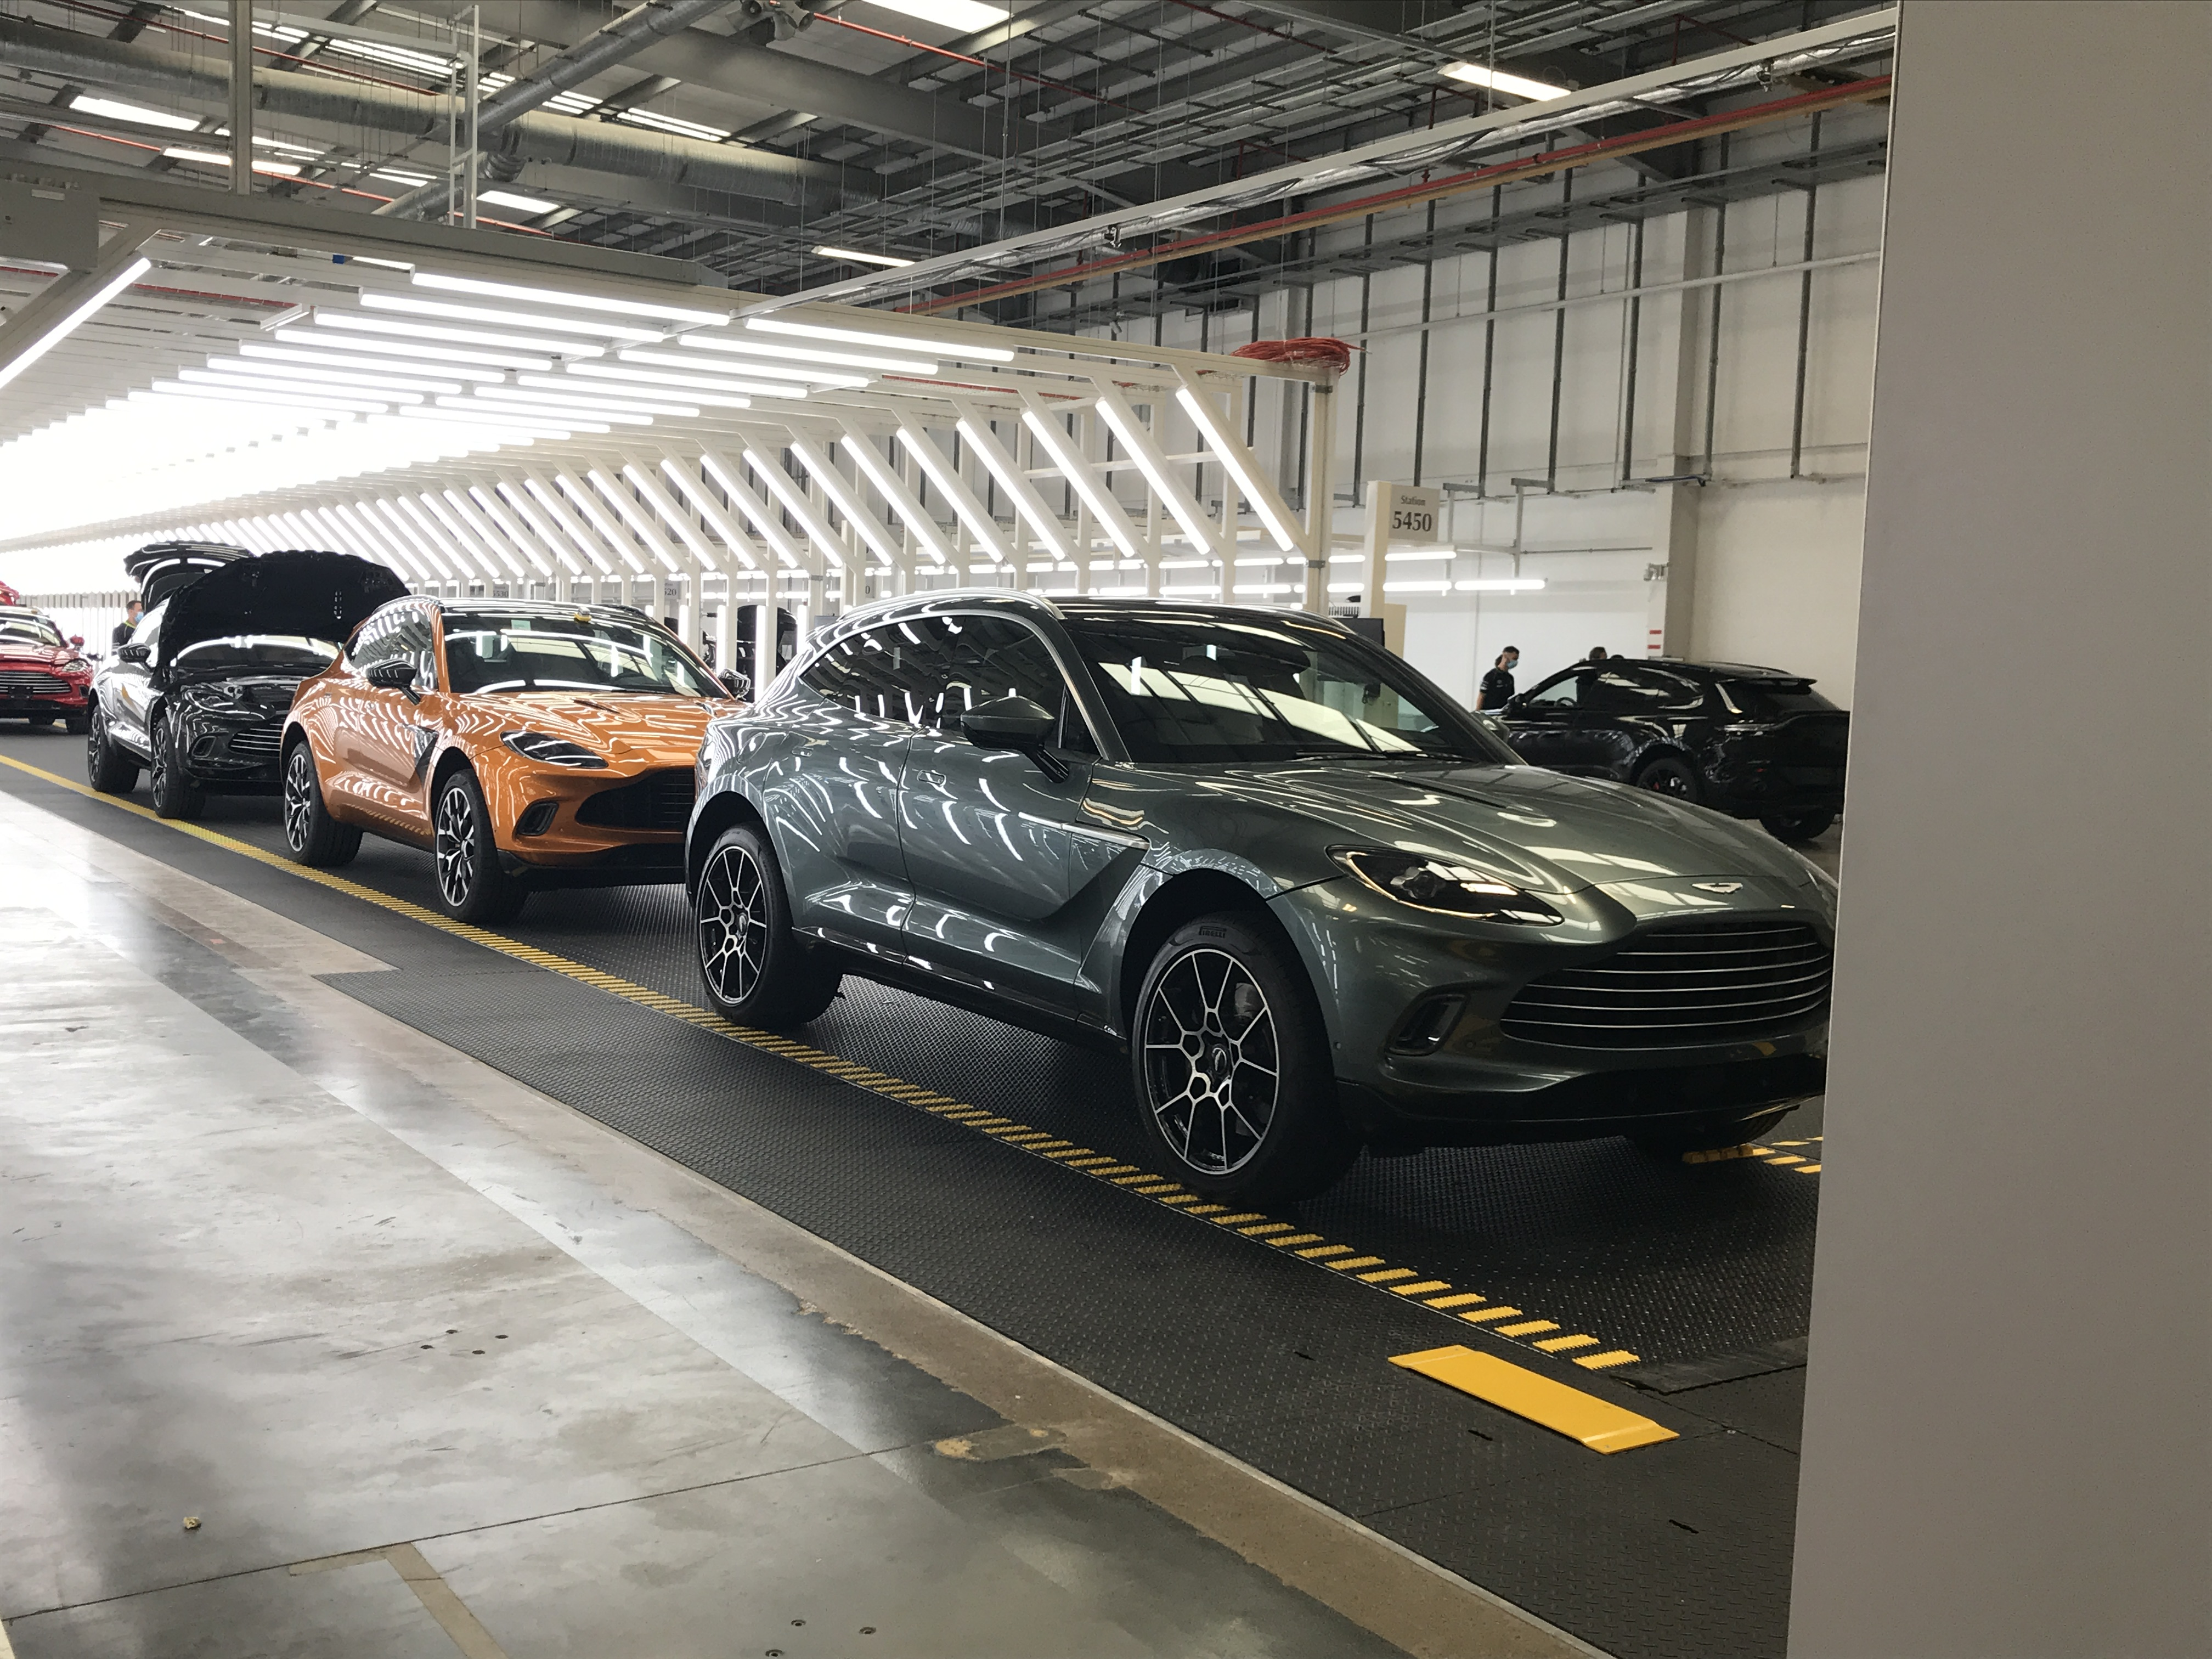 First Aston Martin Suv Comes Off Production Line At St Athan Factory Wales Itv News